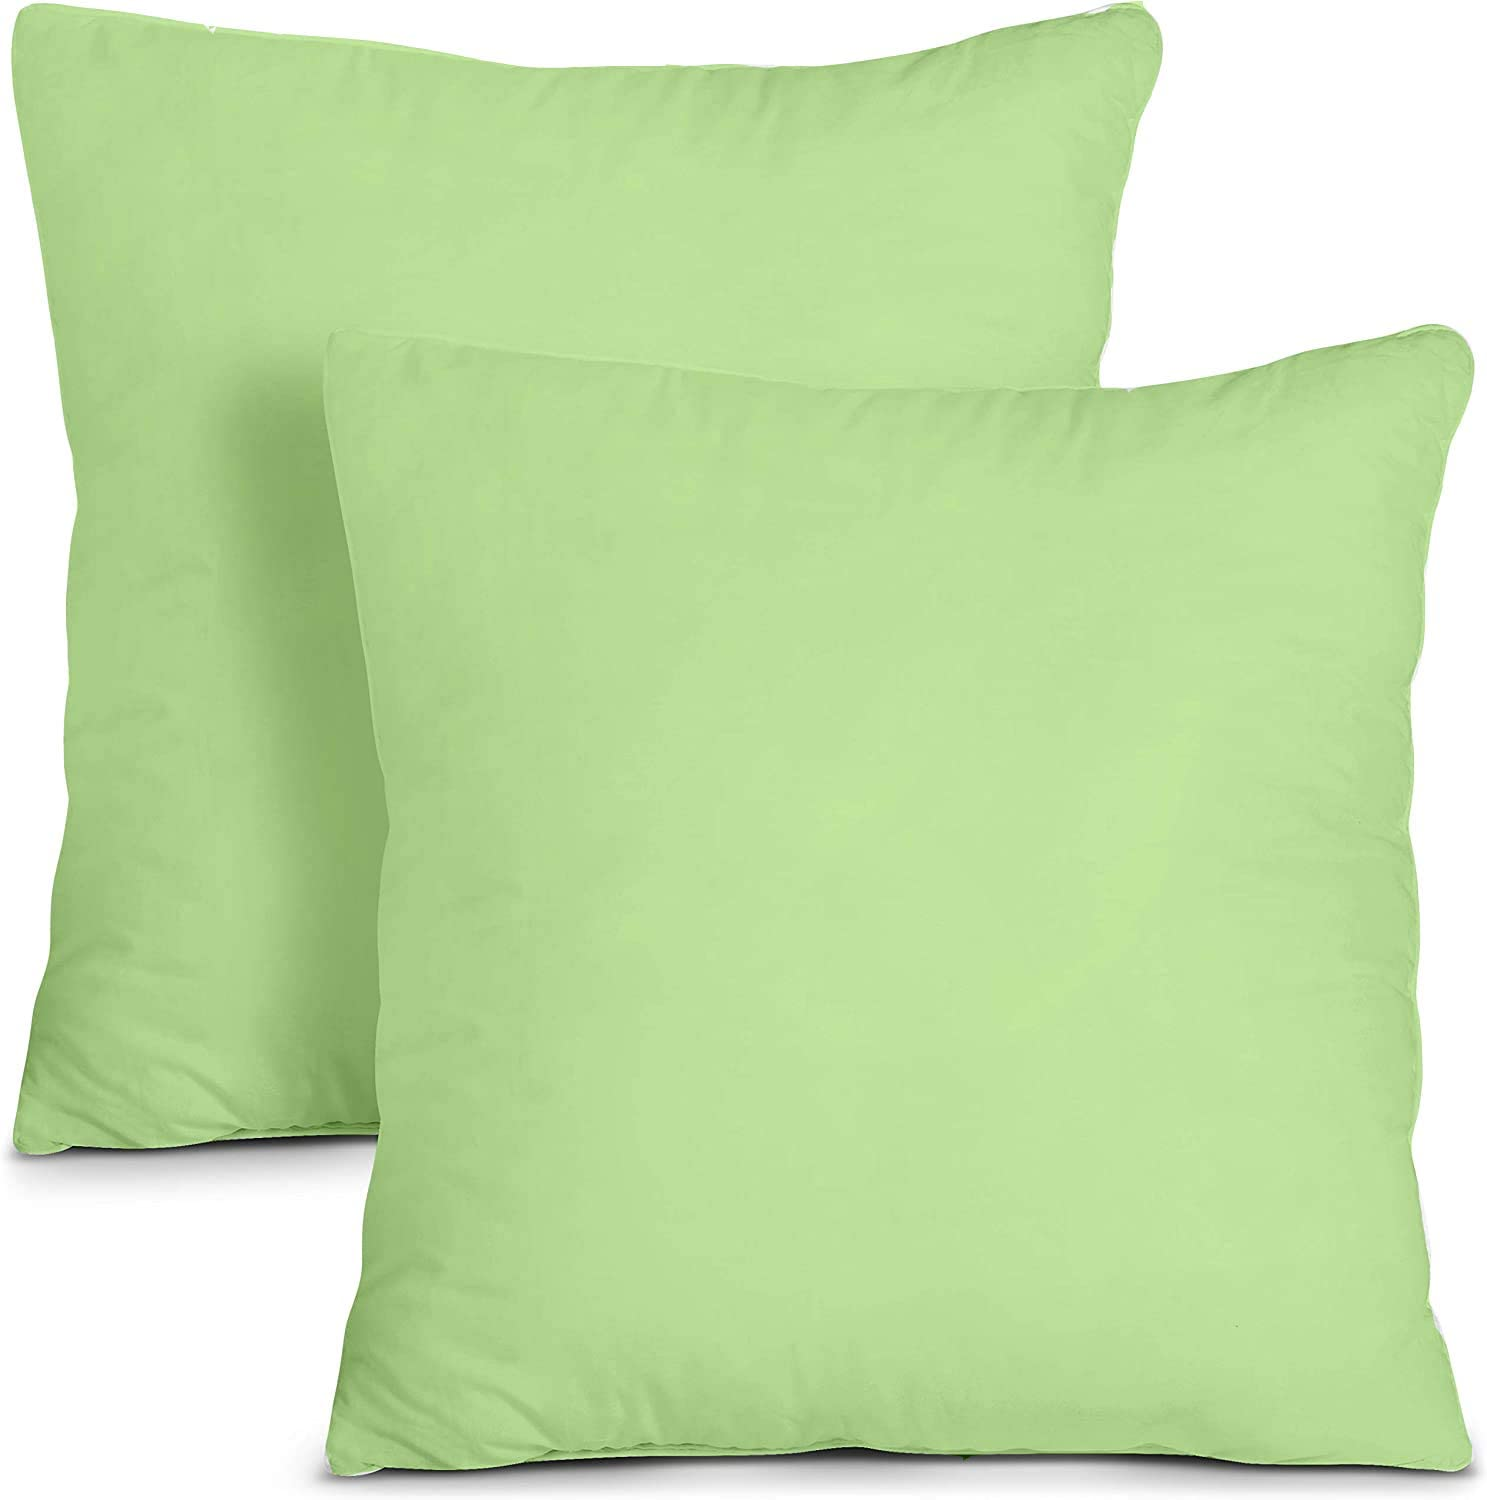 Basics Decor Luxurious - Pillow Sham - 100% Egyptian Cotton- Pillow Cover with Zipper Closer - 1000 TC (Big Euro Sized 28 by 28 inch) - Sage Green - Set of 2